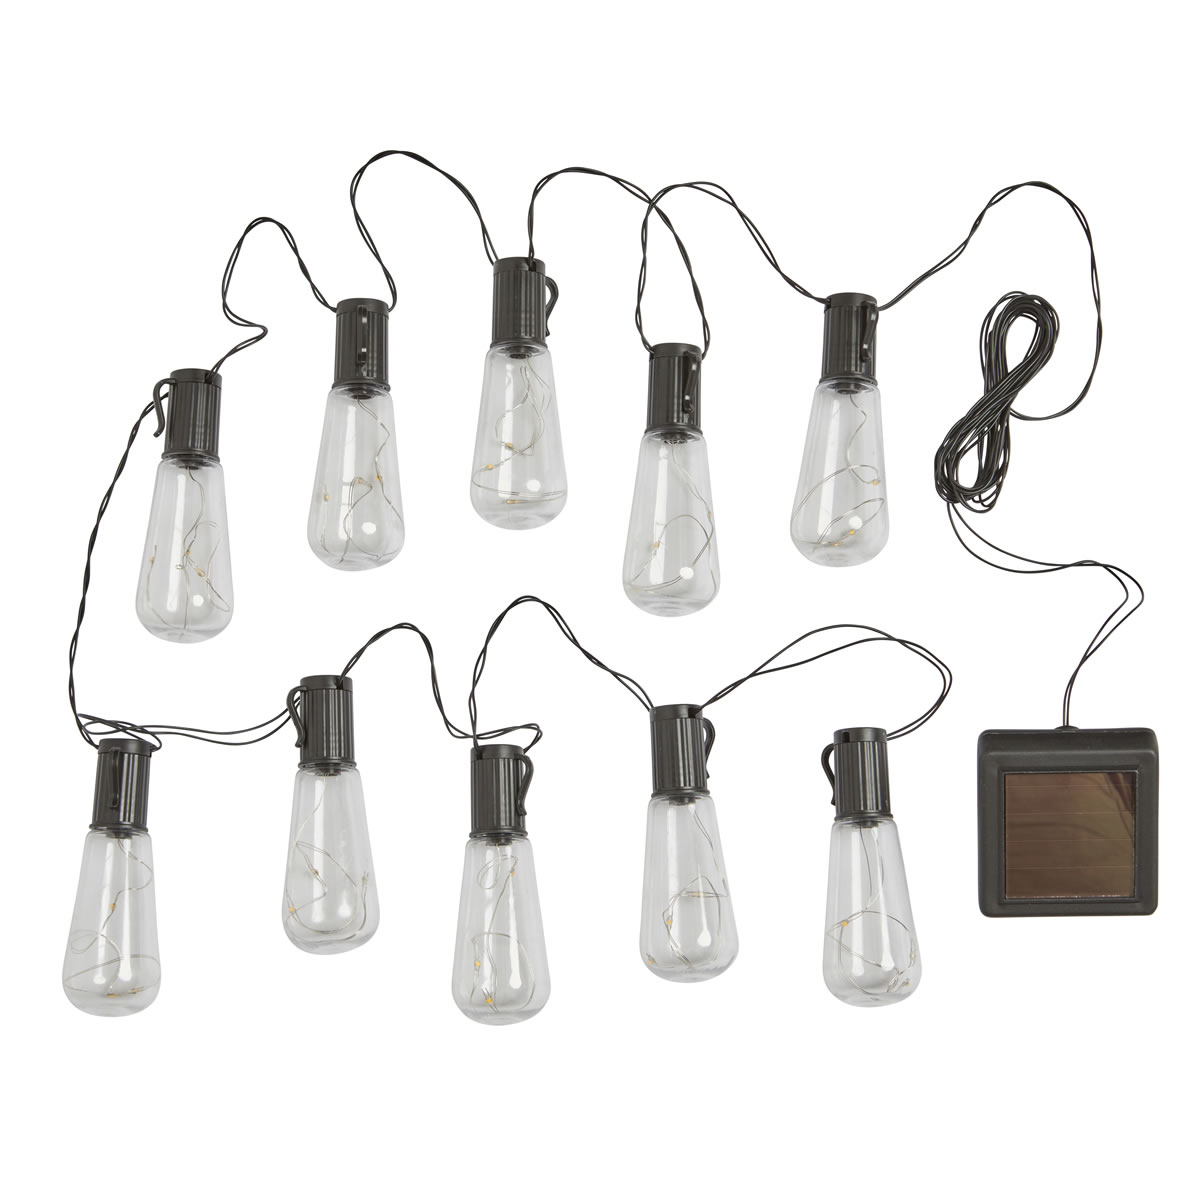 Extra image of Eureka! Vintage Litghbulbs String Lights - Pack of 10